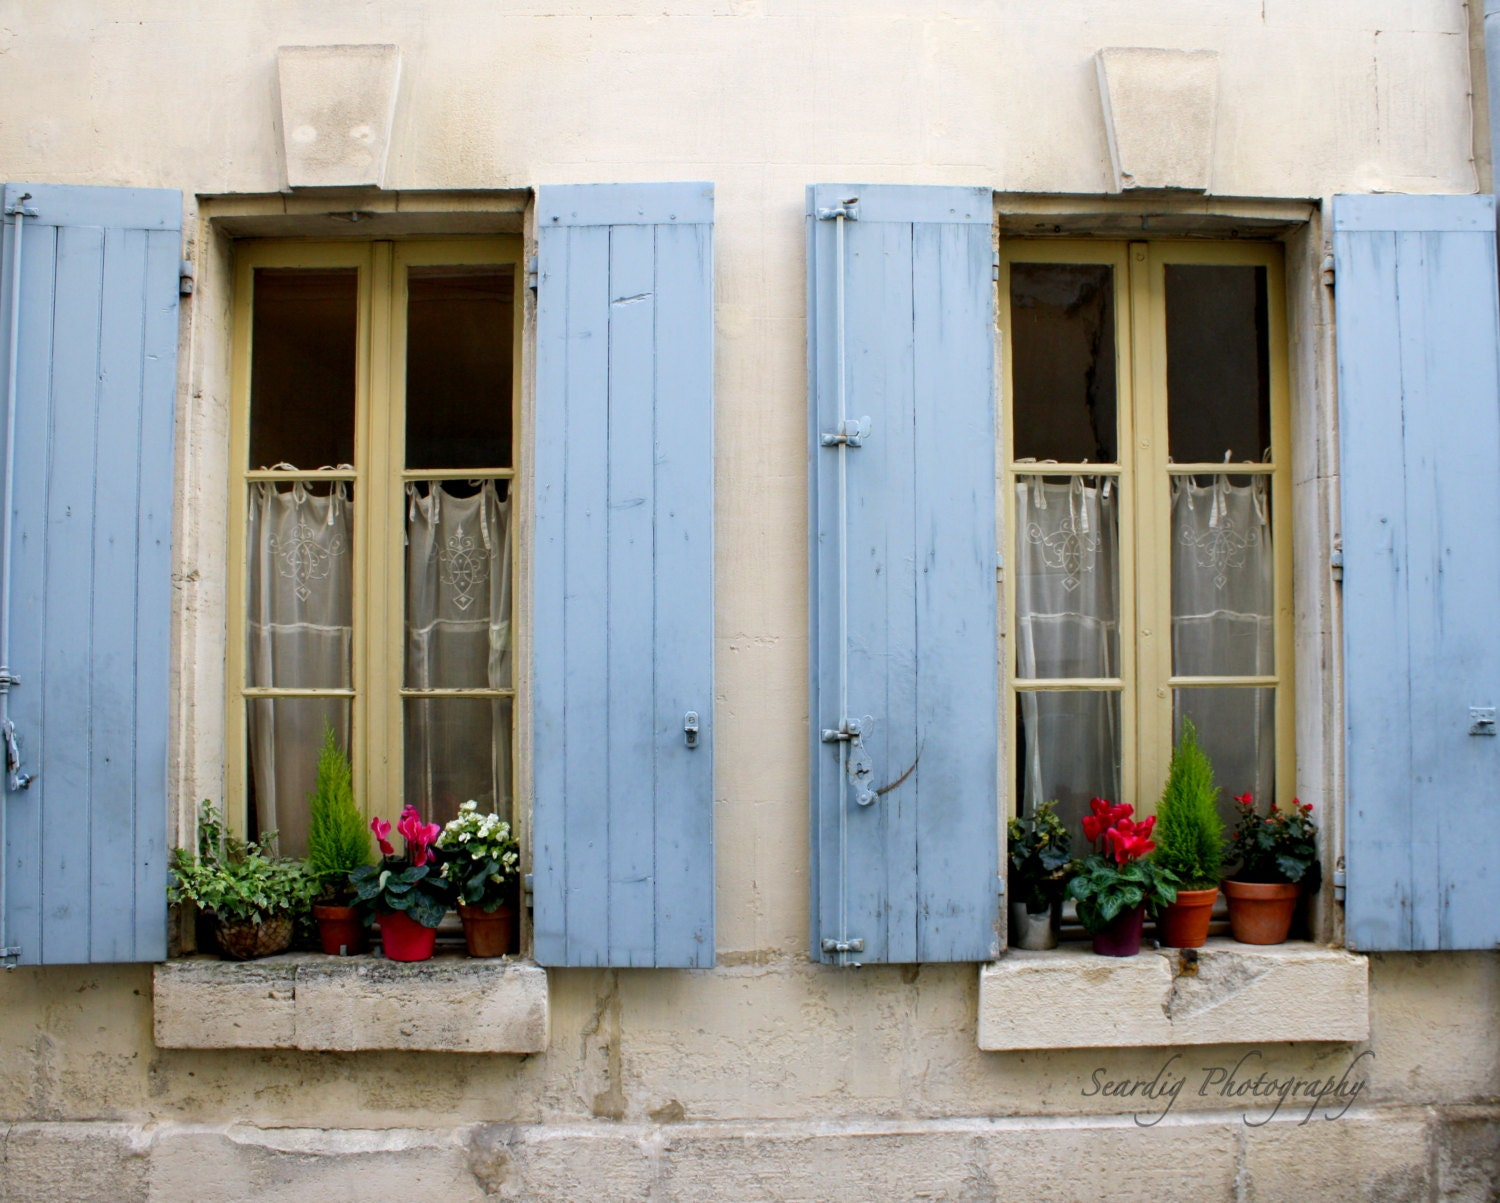 St remy de provence france rustic french window shutters for Decorating with old windows and shutters